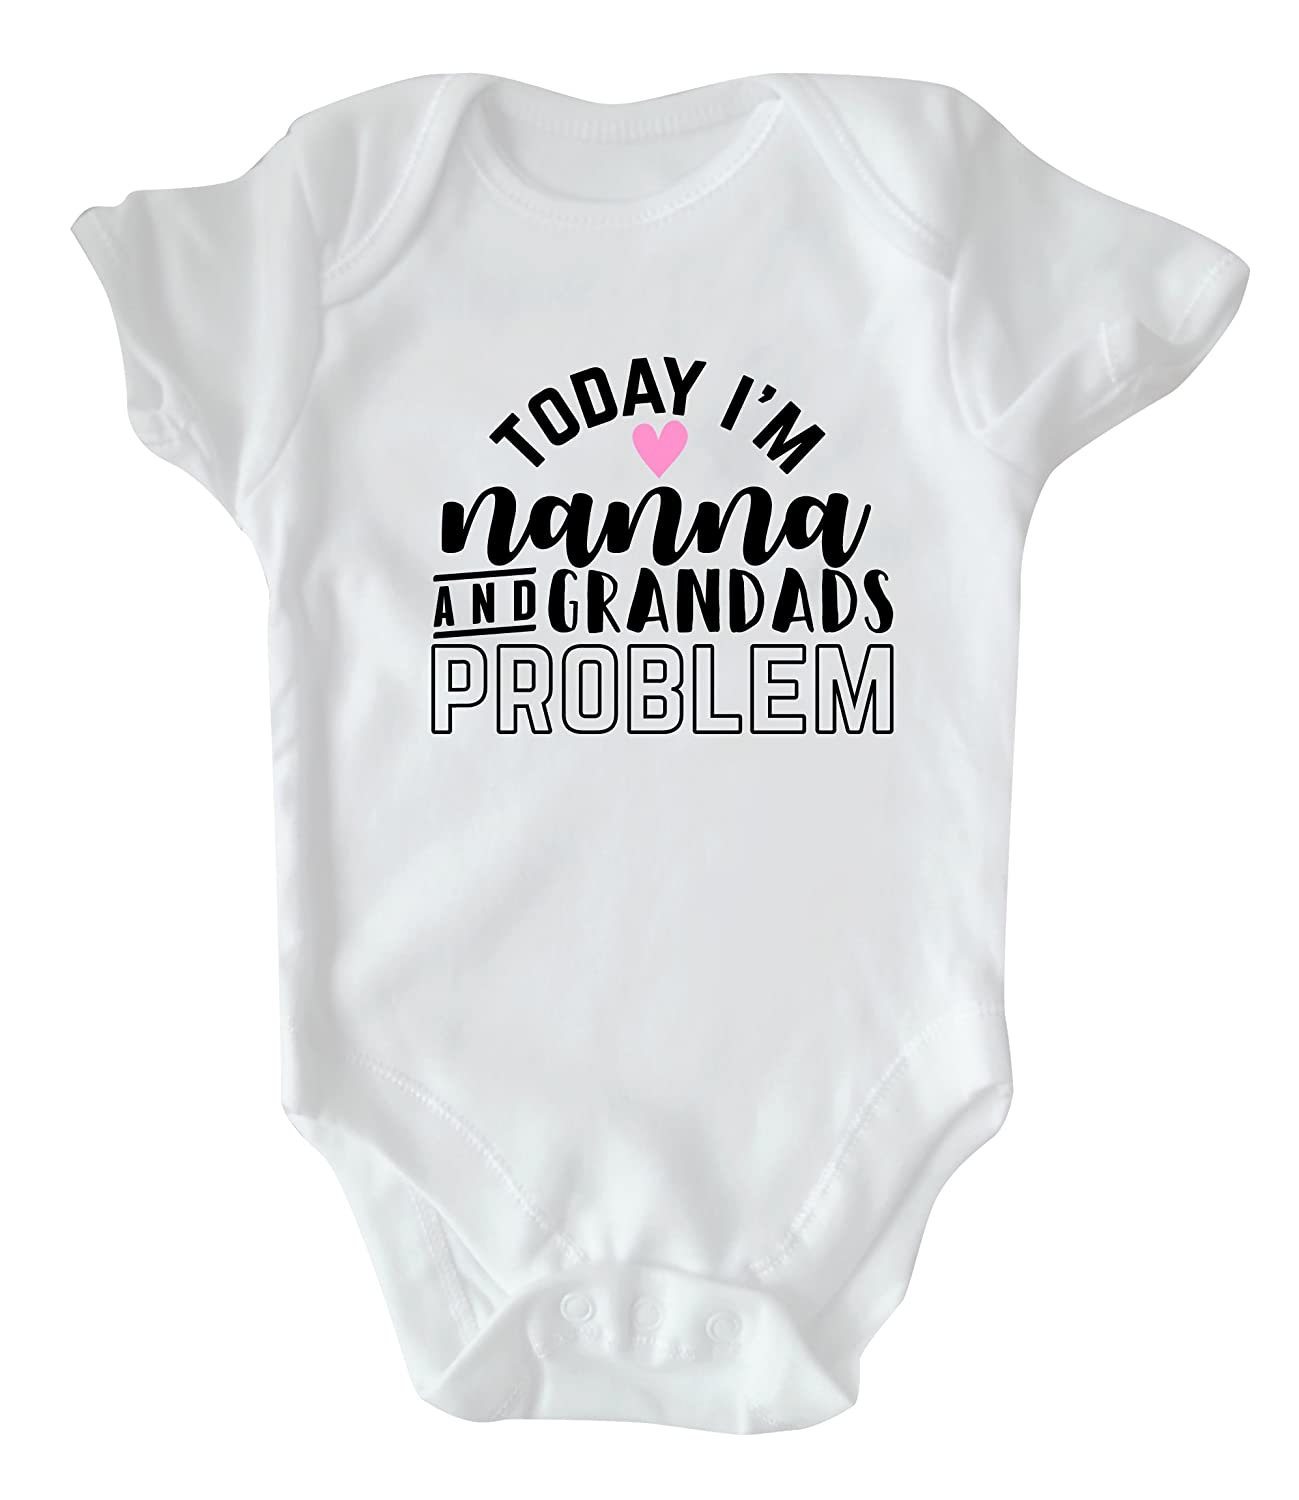 Rock Paper Sisters White Slogan Baby Vest: Today I'm Nanna and Grandads Problem